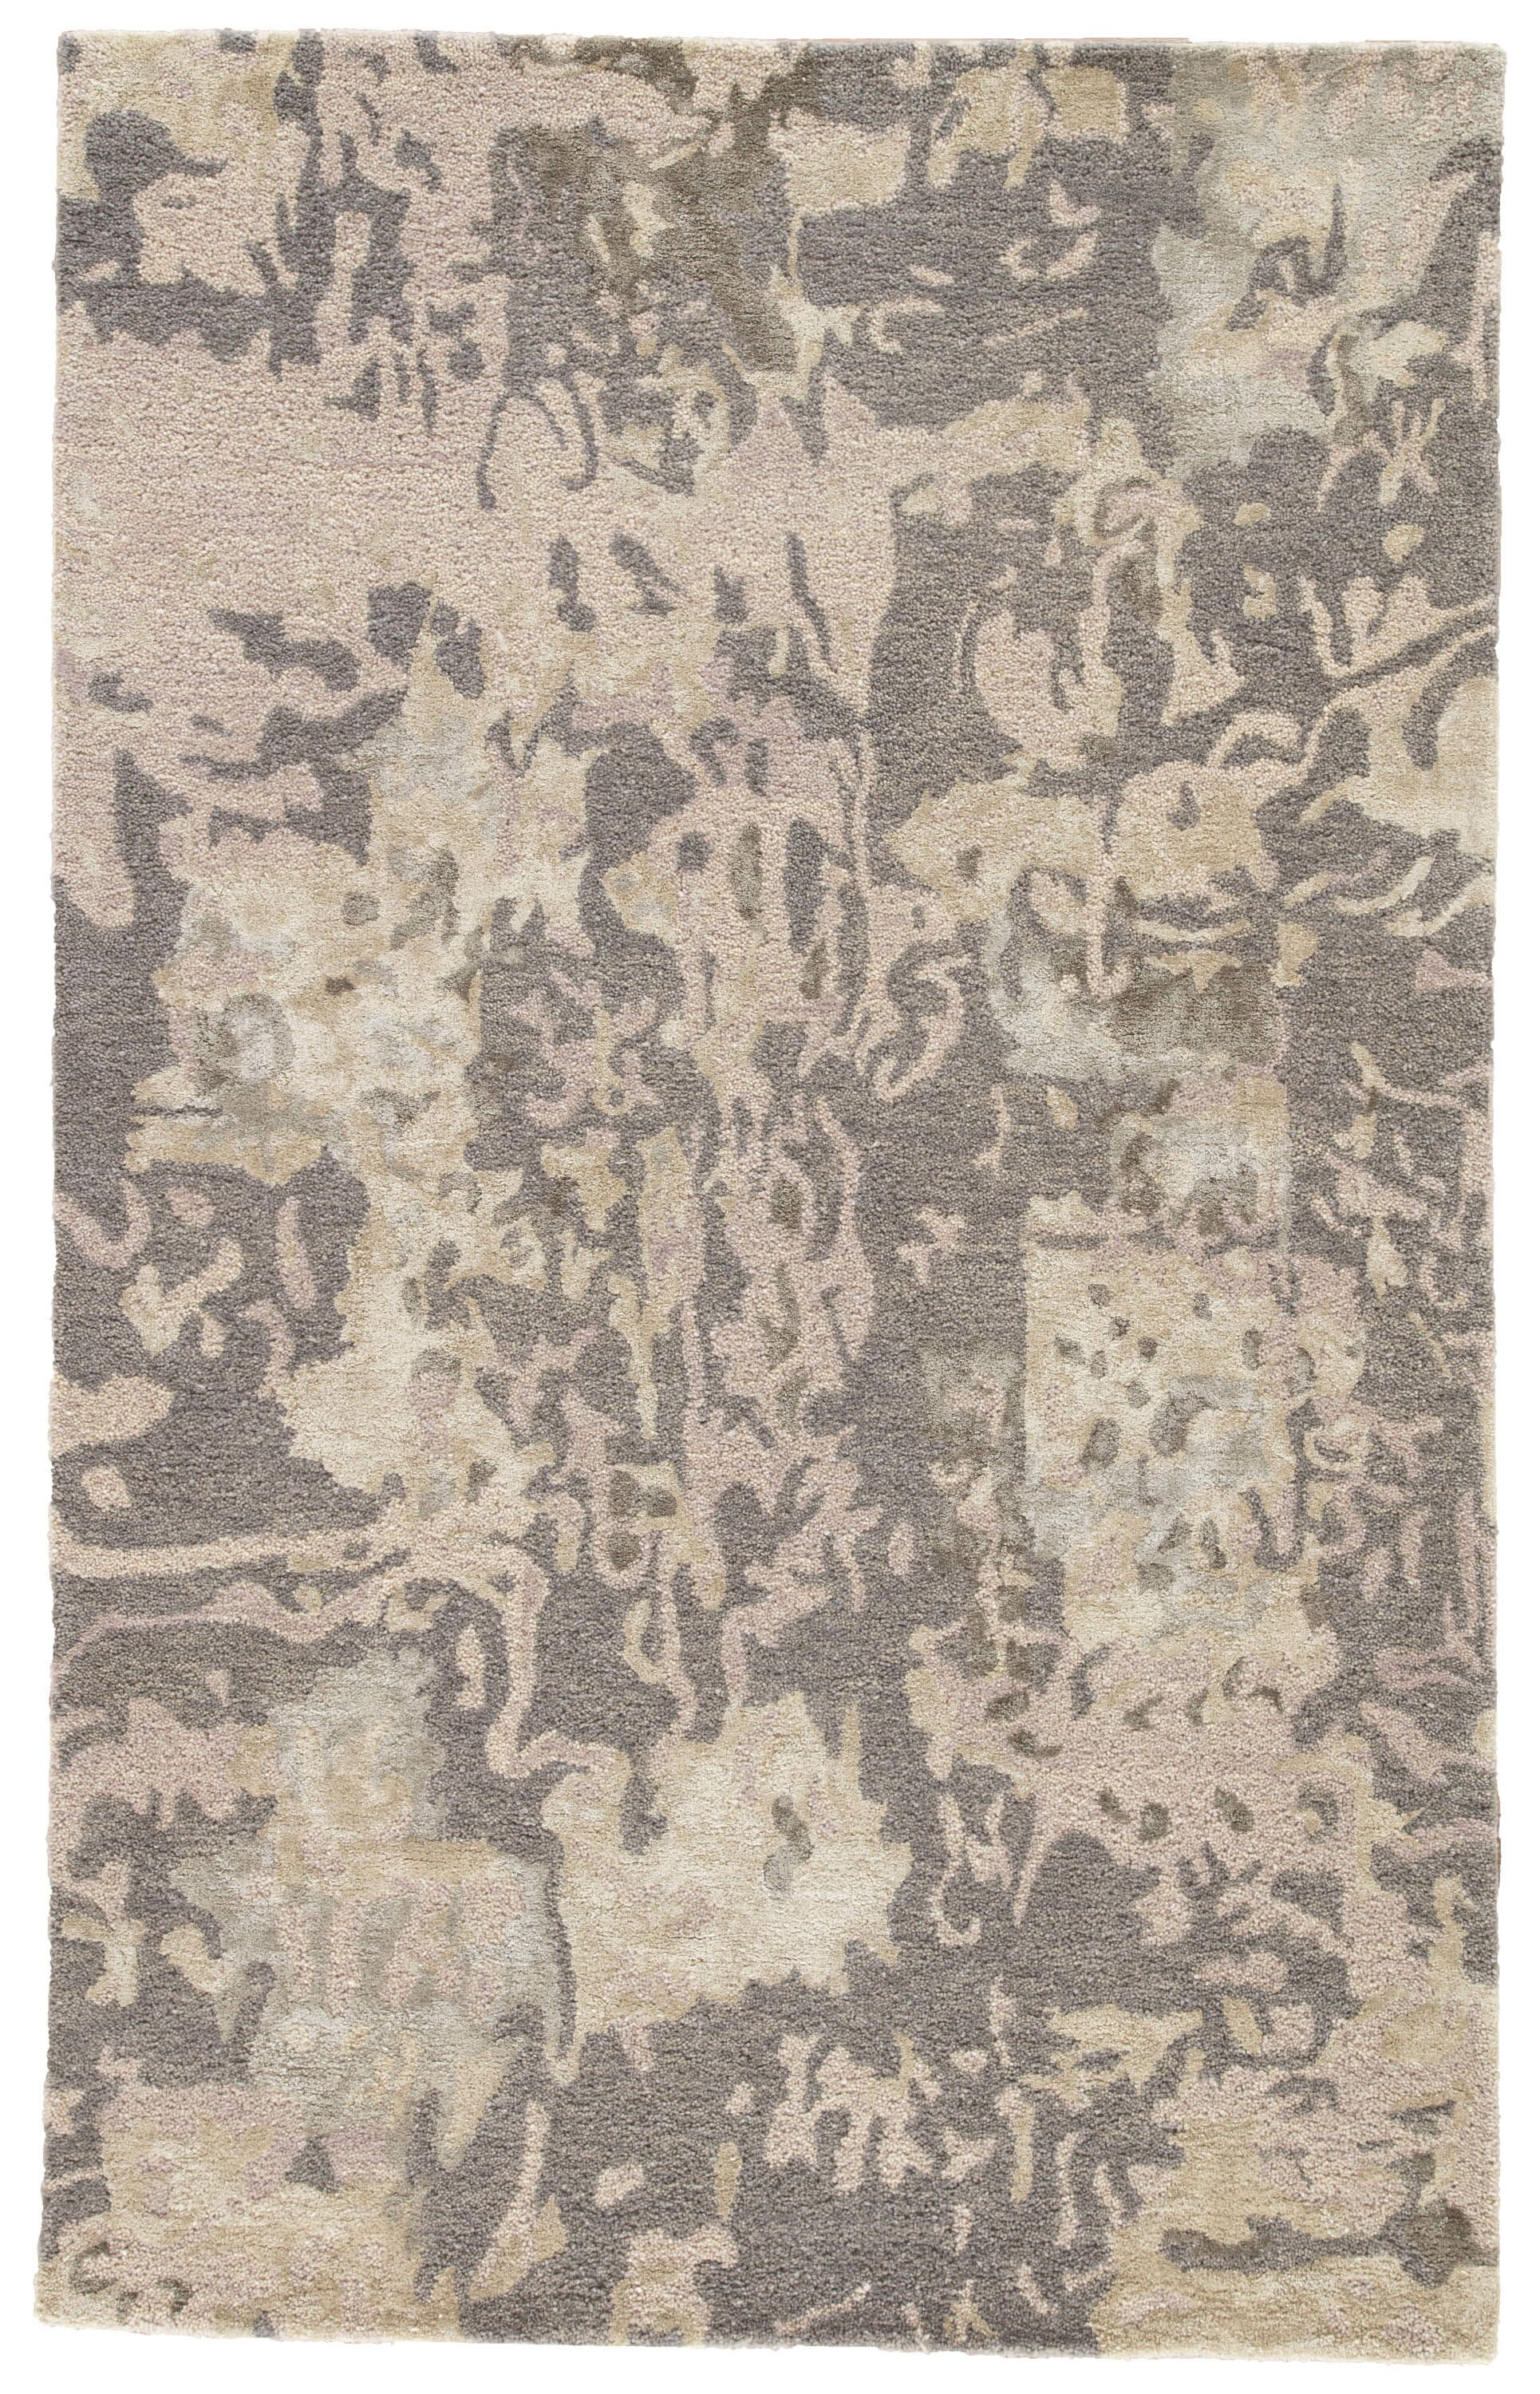 Morias Hand Tufted Gray/Taupe Area Rug Rug Size: Rectangle 9' x 12'